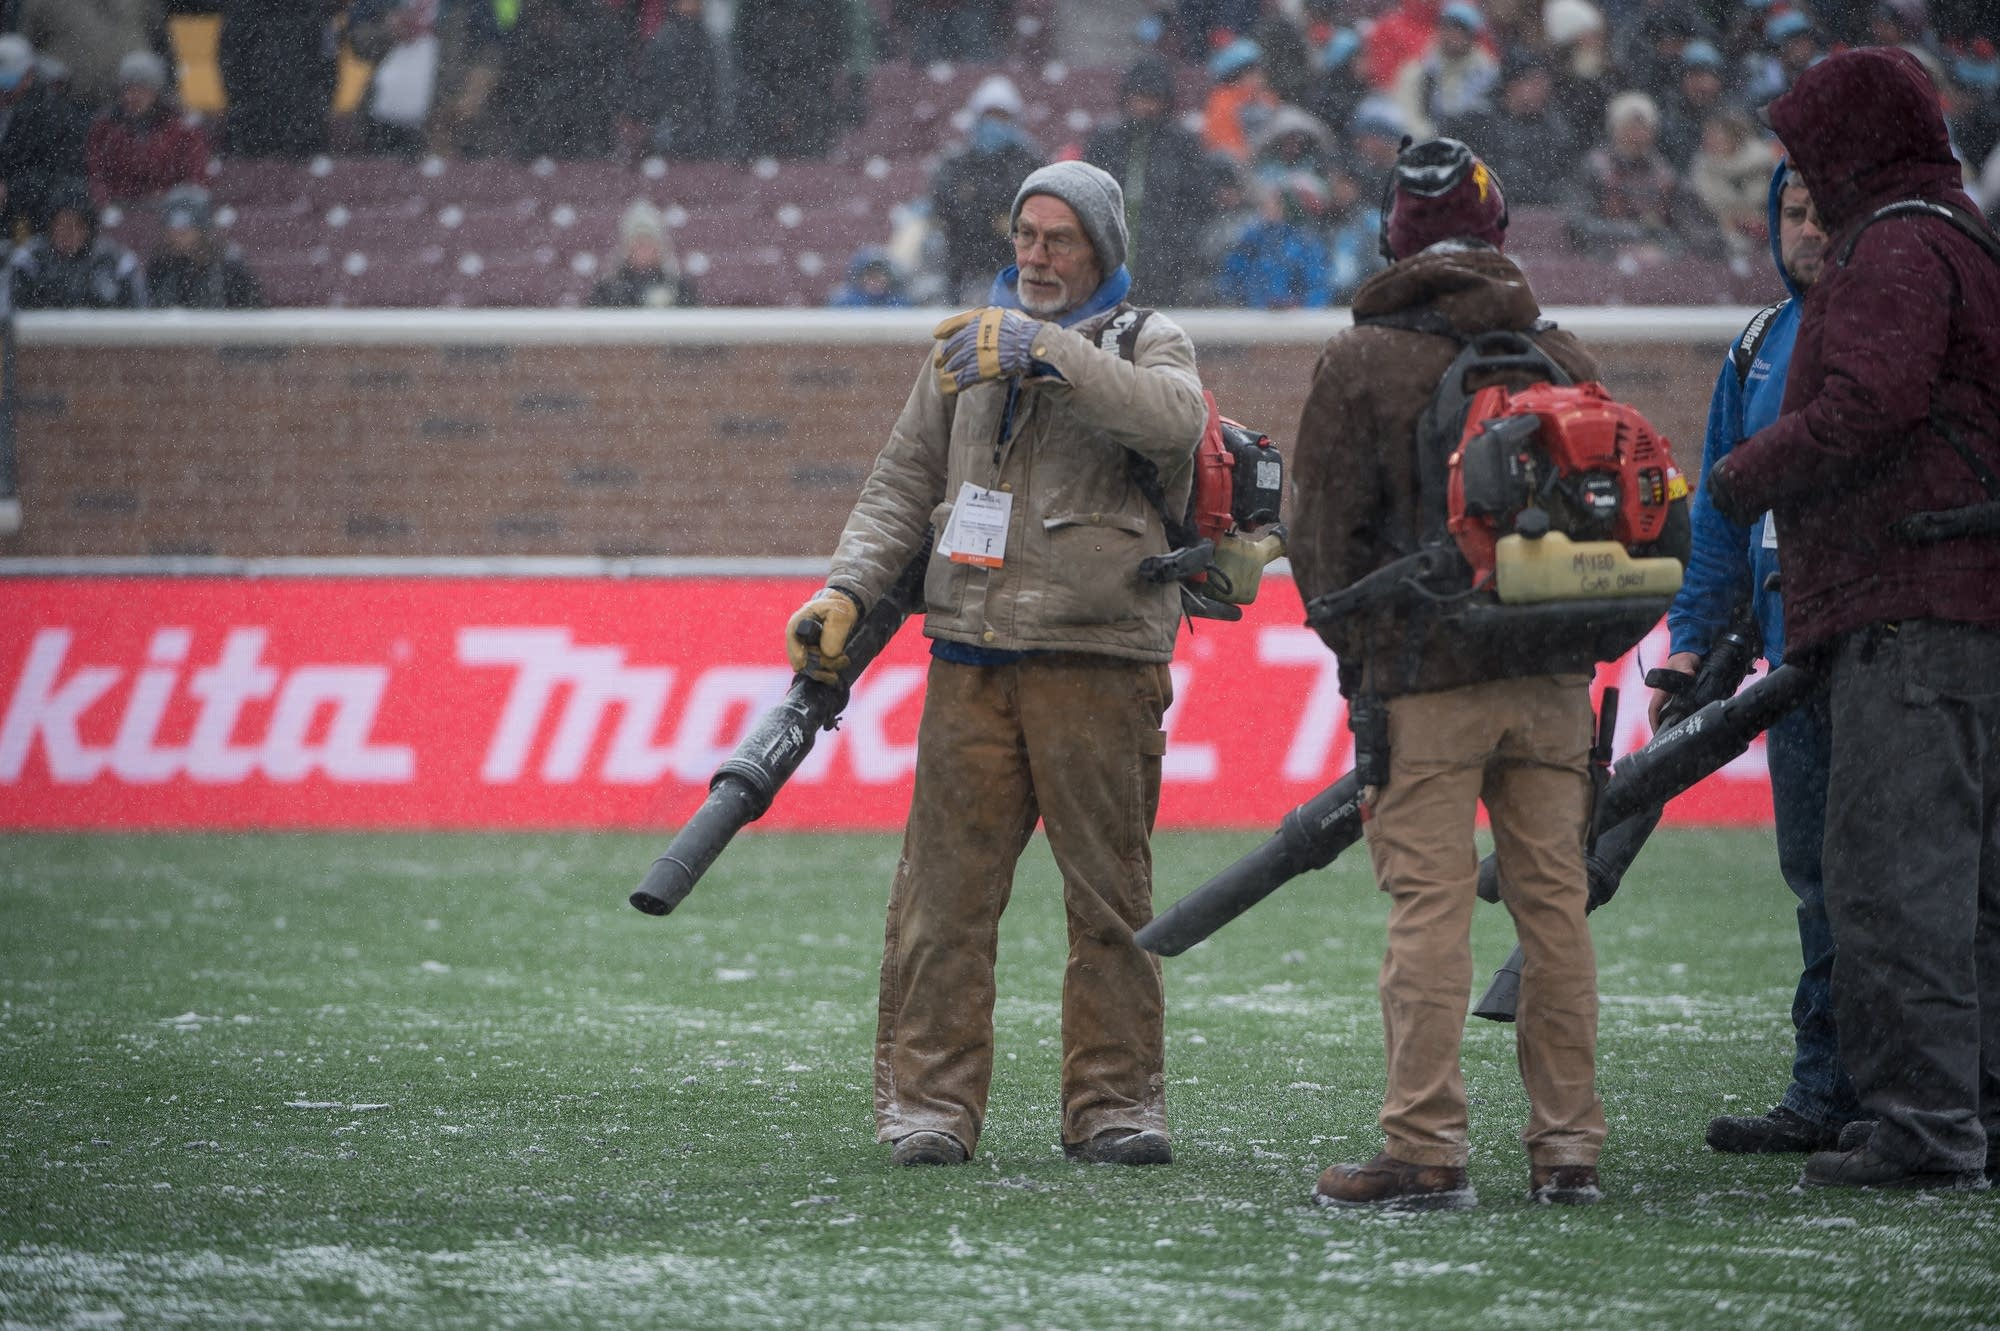 Leaf blowers were used to keep snow off the turf.